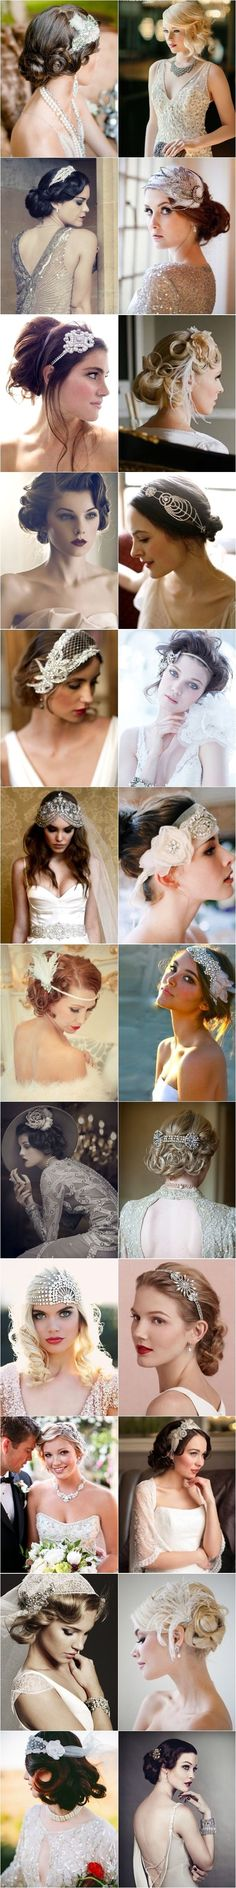 """Wedding Philippines - Gatsby Glam Inspired Hairstyles"" Tons of ideas for our hair for your future Gatsby-themed wedding! Lol Wedding Philippines - Gatsby Glam Inspired Hairstyles Tons of ideas for our hair for your future Gatsby-themed wedding! Gatsby Wedding, Glamorous Wedding, Wedding Updo, Wedding Vintage, Gatsby Party, 1920s Party, Gatsby Theme, Gatsby Style, Trendy Wedding"